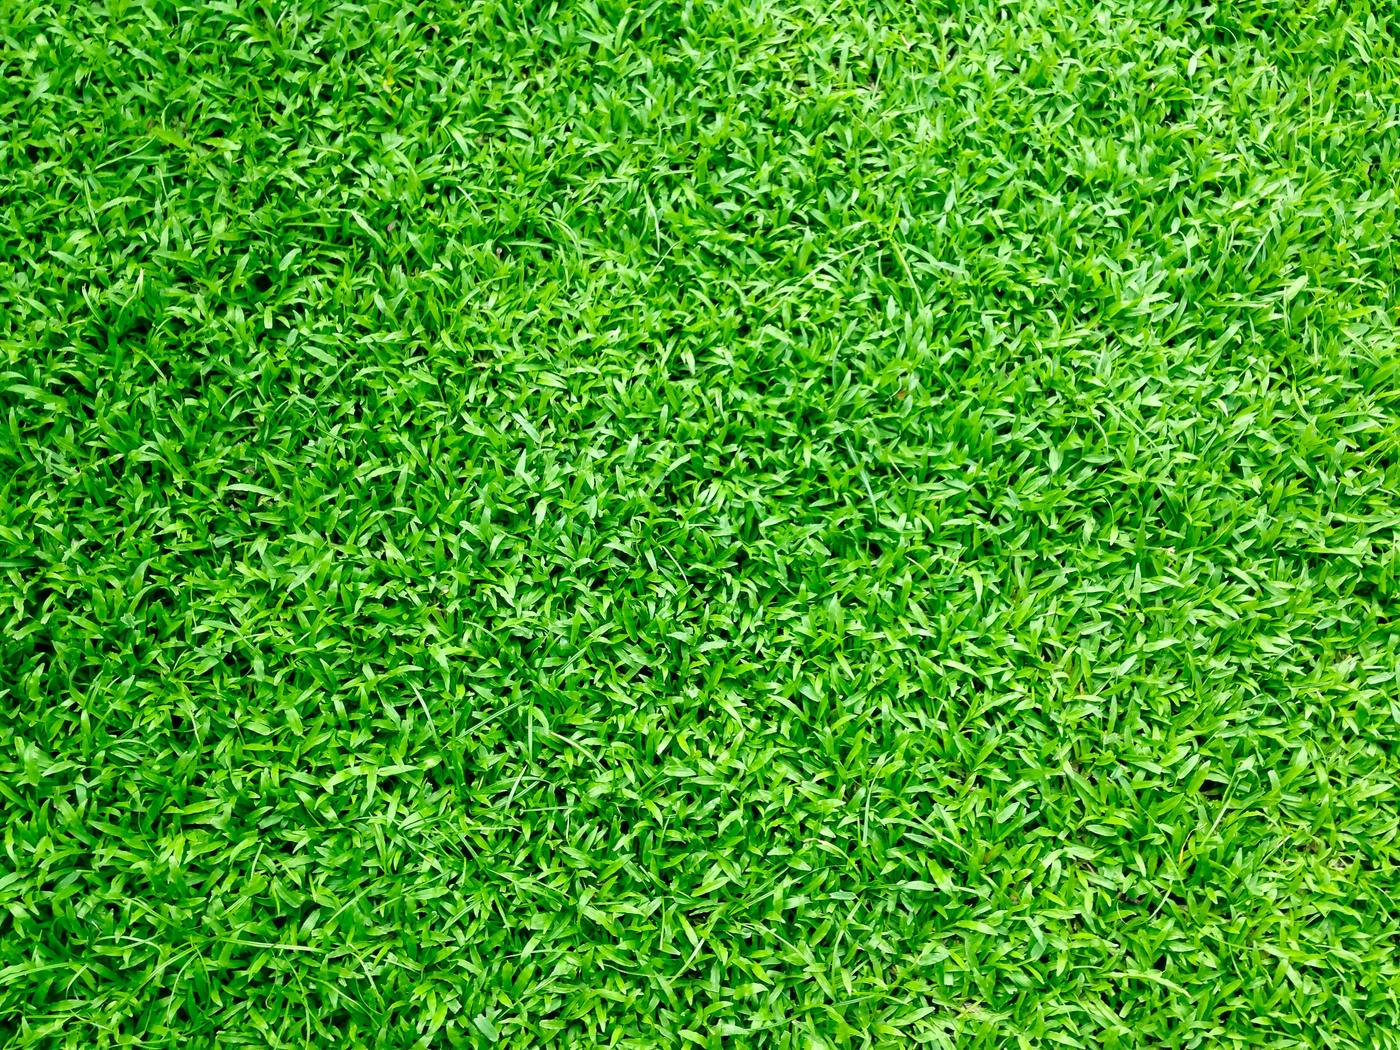 How To Buy The Right Grass Seeds For Your Lawn